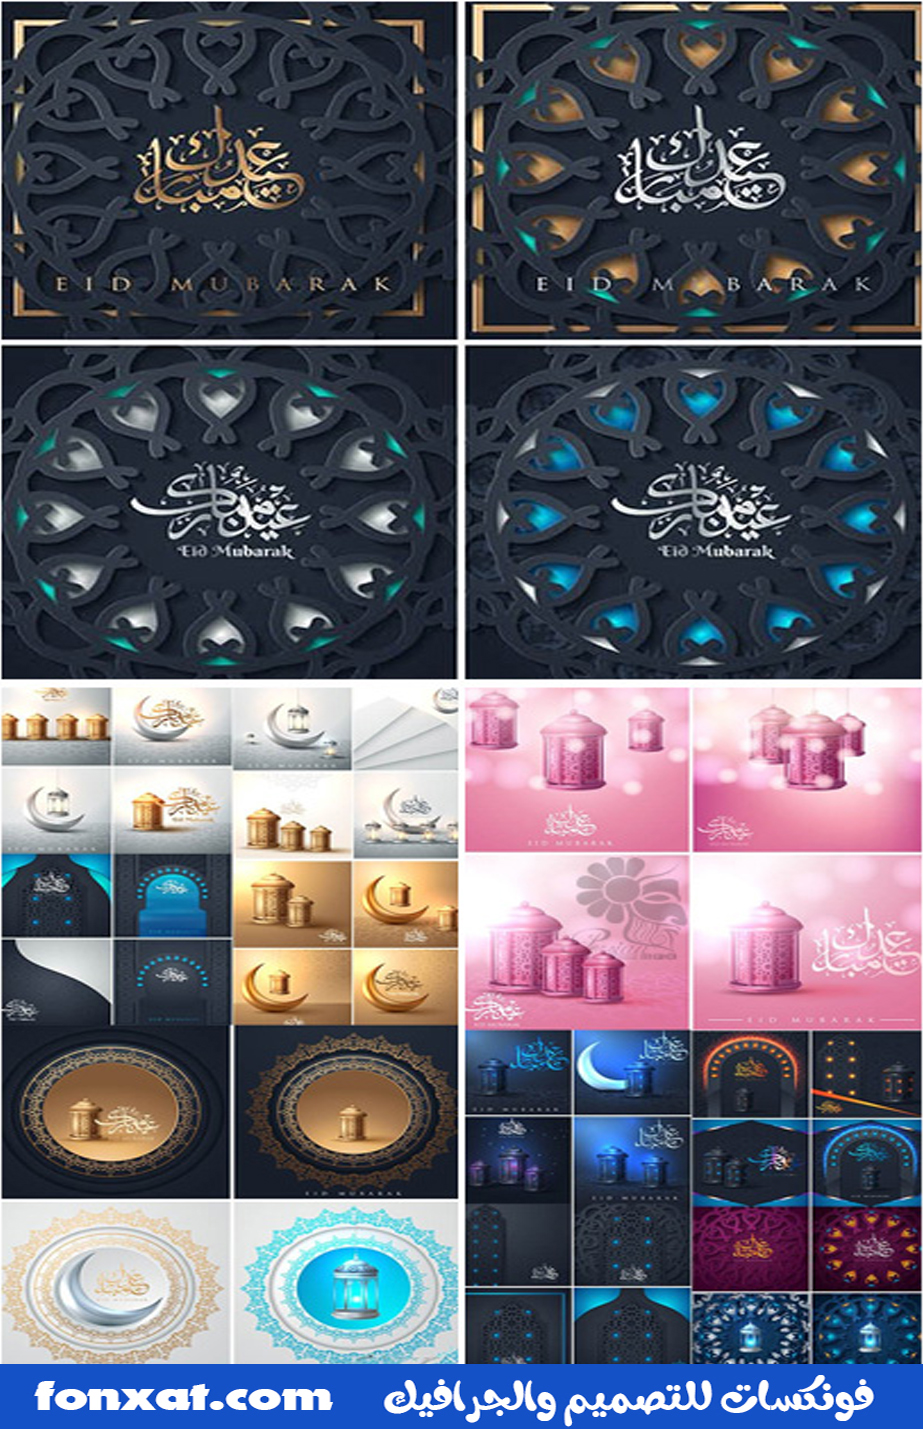 Arabic Elegant Greeting Decorated Cards And Calligraphy Stock Illustration Set